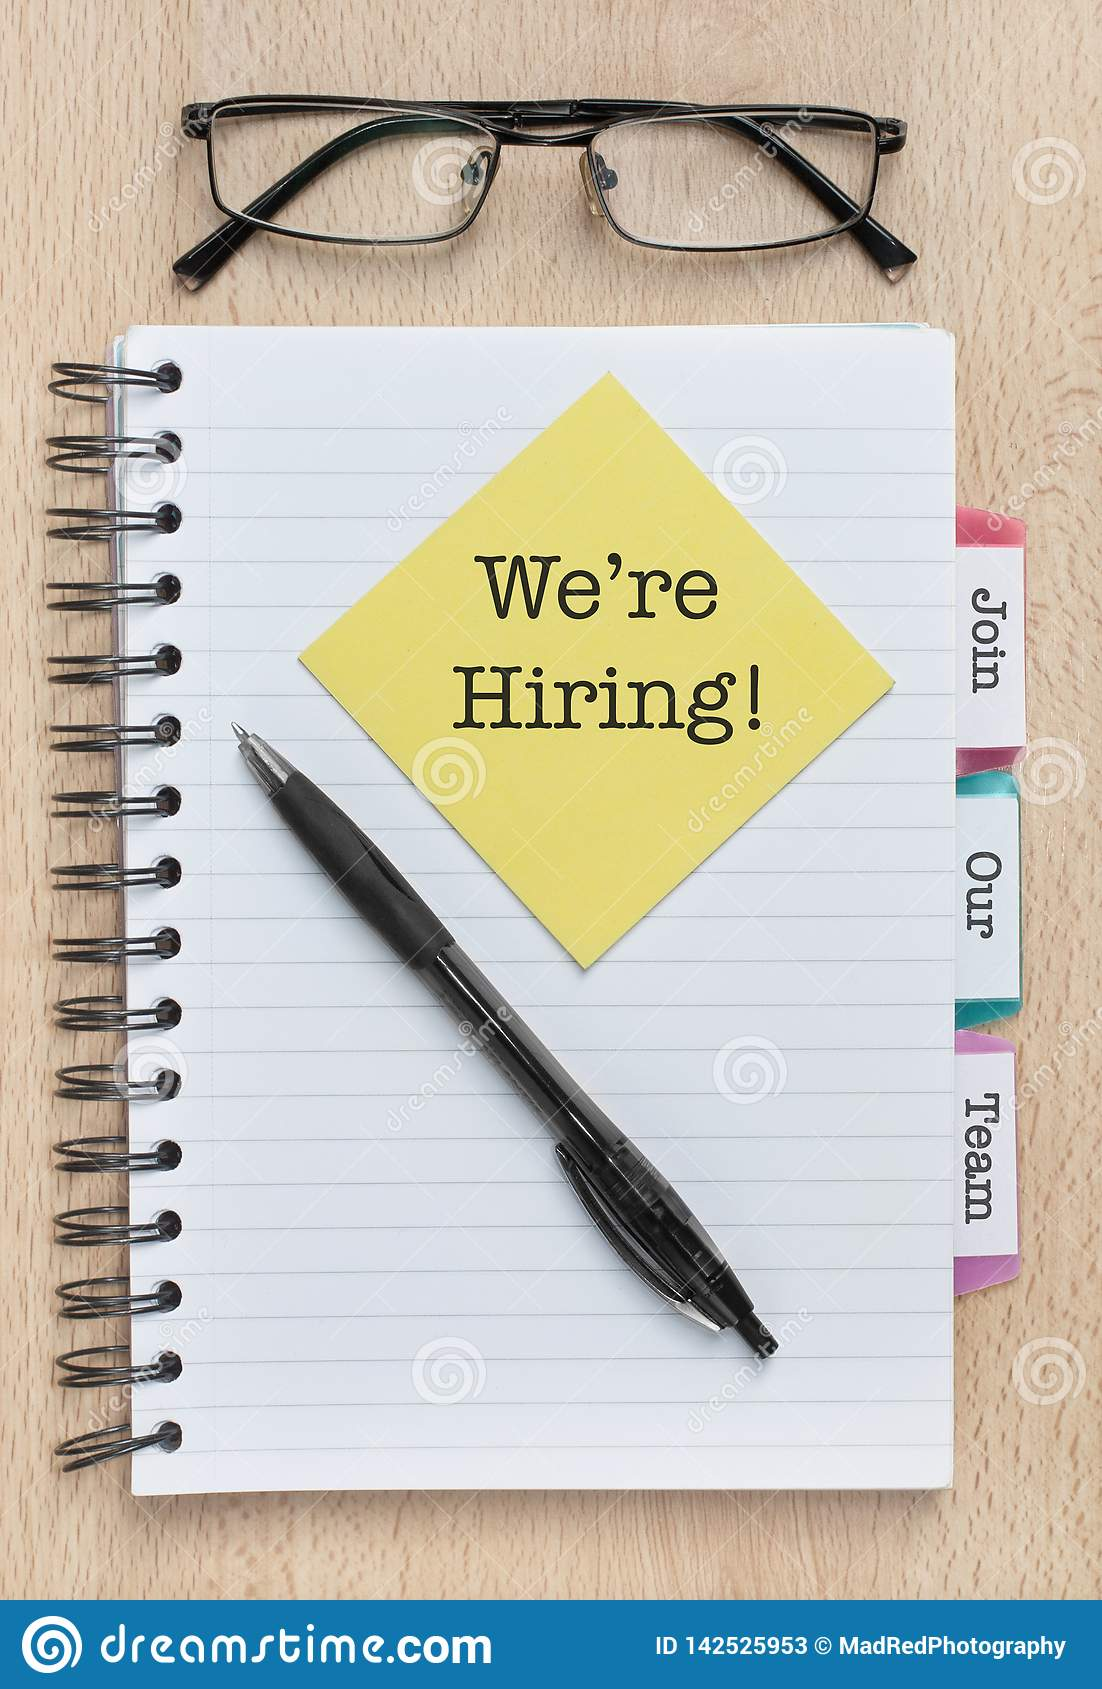 We Are Hiring, Join Our Team. Text written on a sticky note on a notebook, next to a pen and glasses